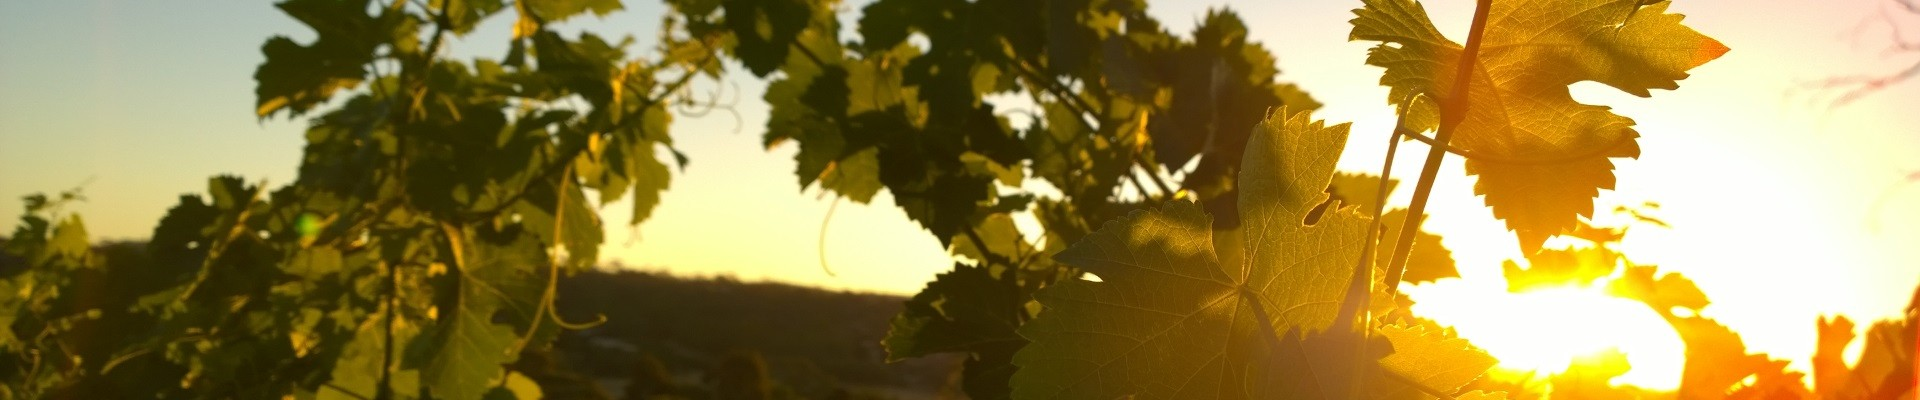 Vineyard sunset with Ackland Vineyard Services